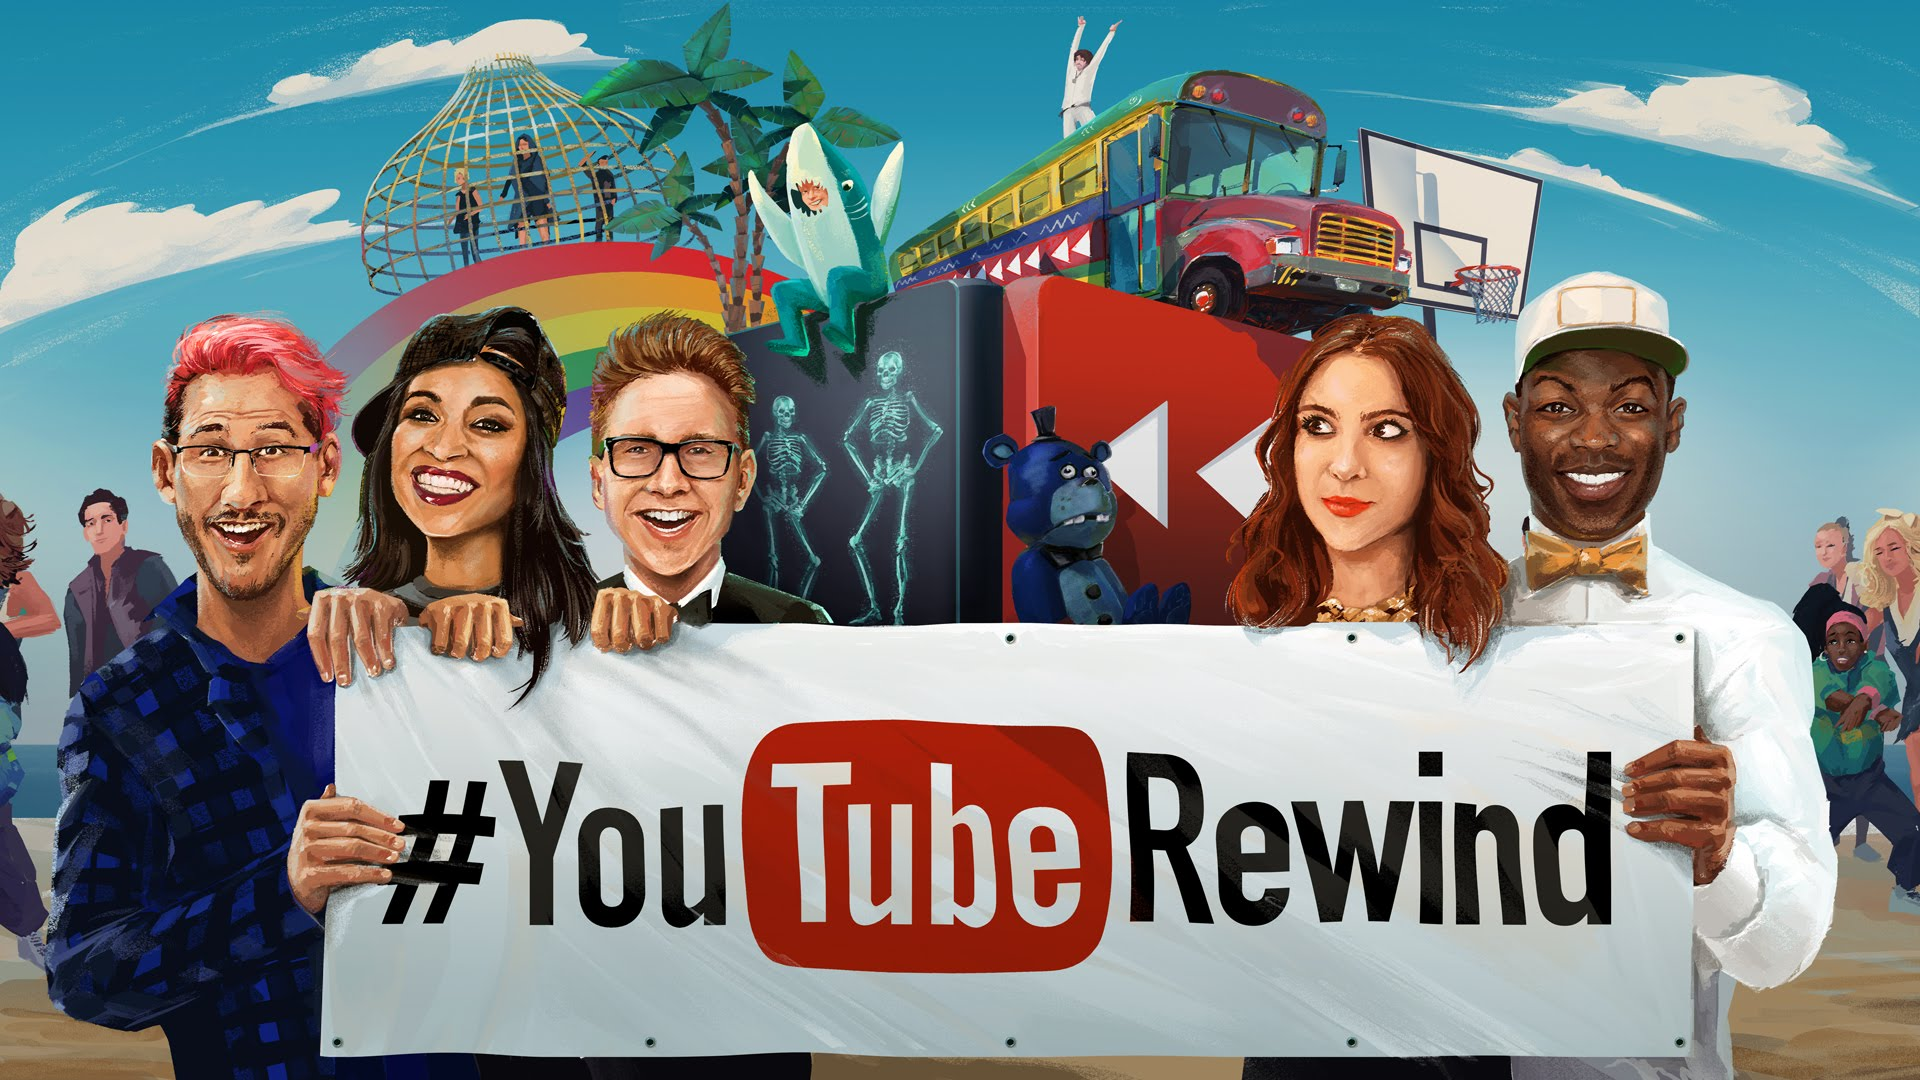 YouTube Rewind 2015 has dropped!